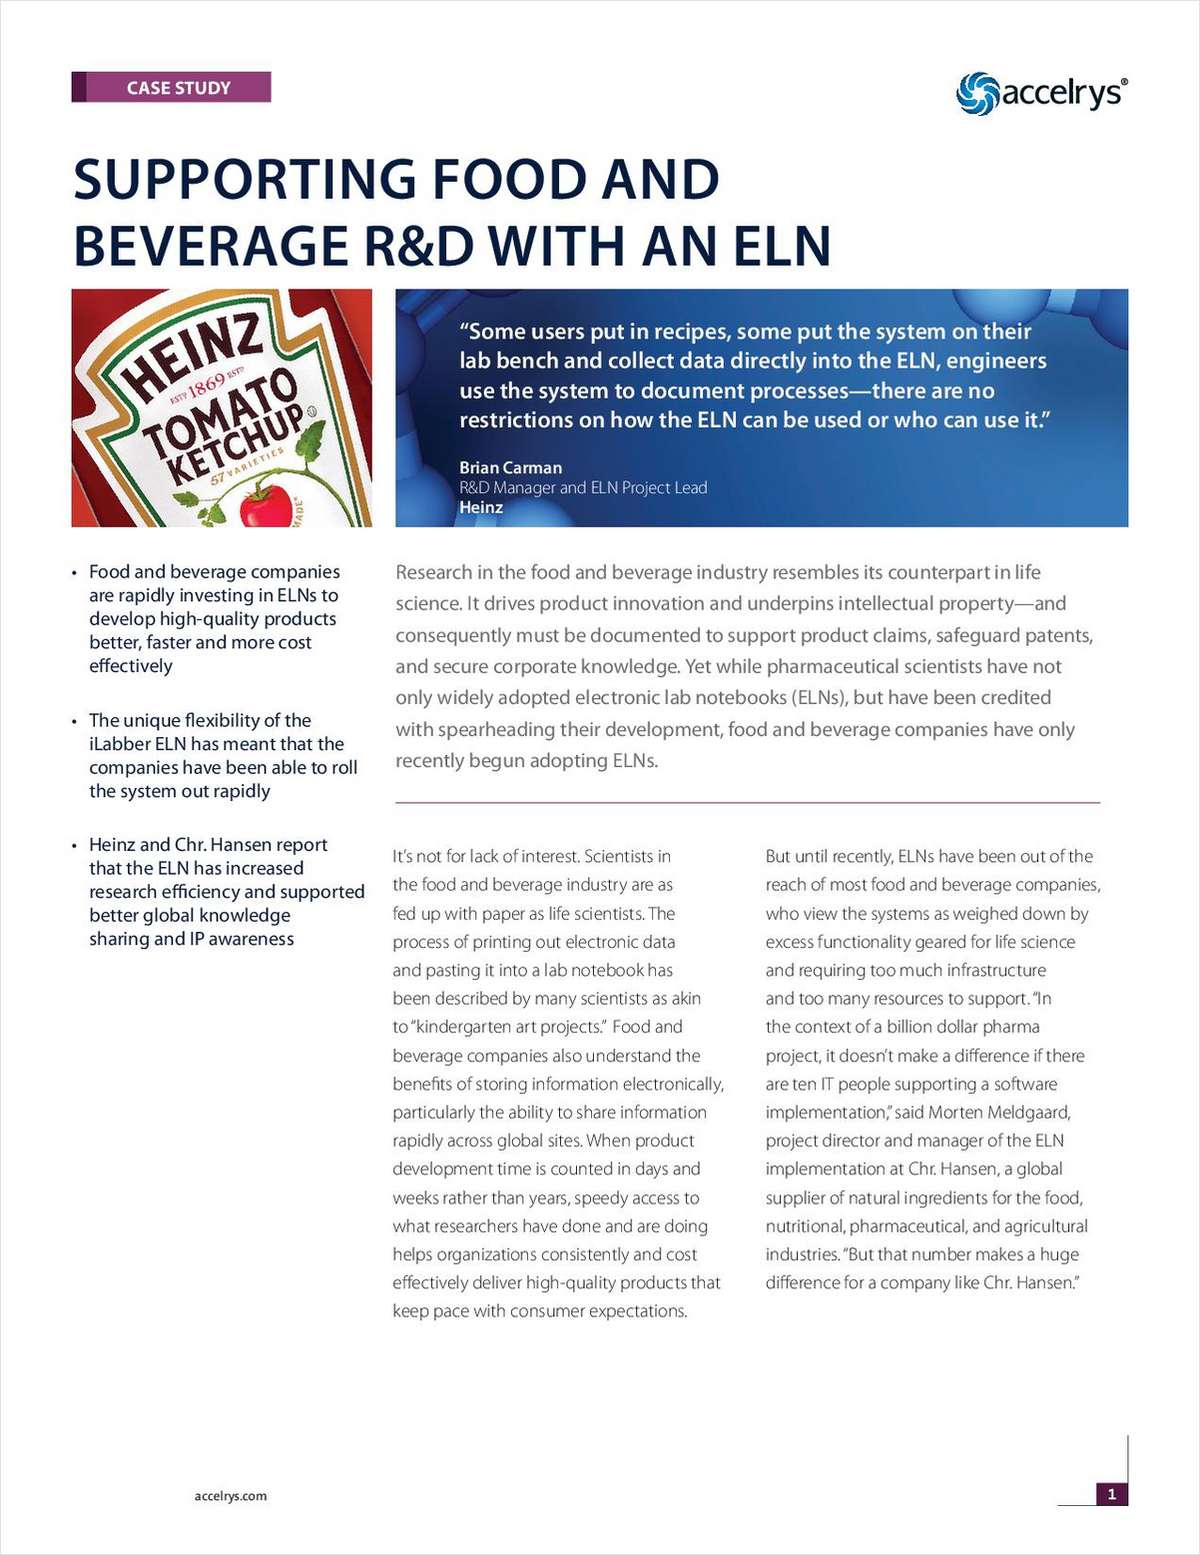 Supporting Food & Beverage Research with an Electronic Lab Notebook